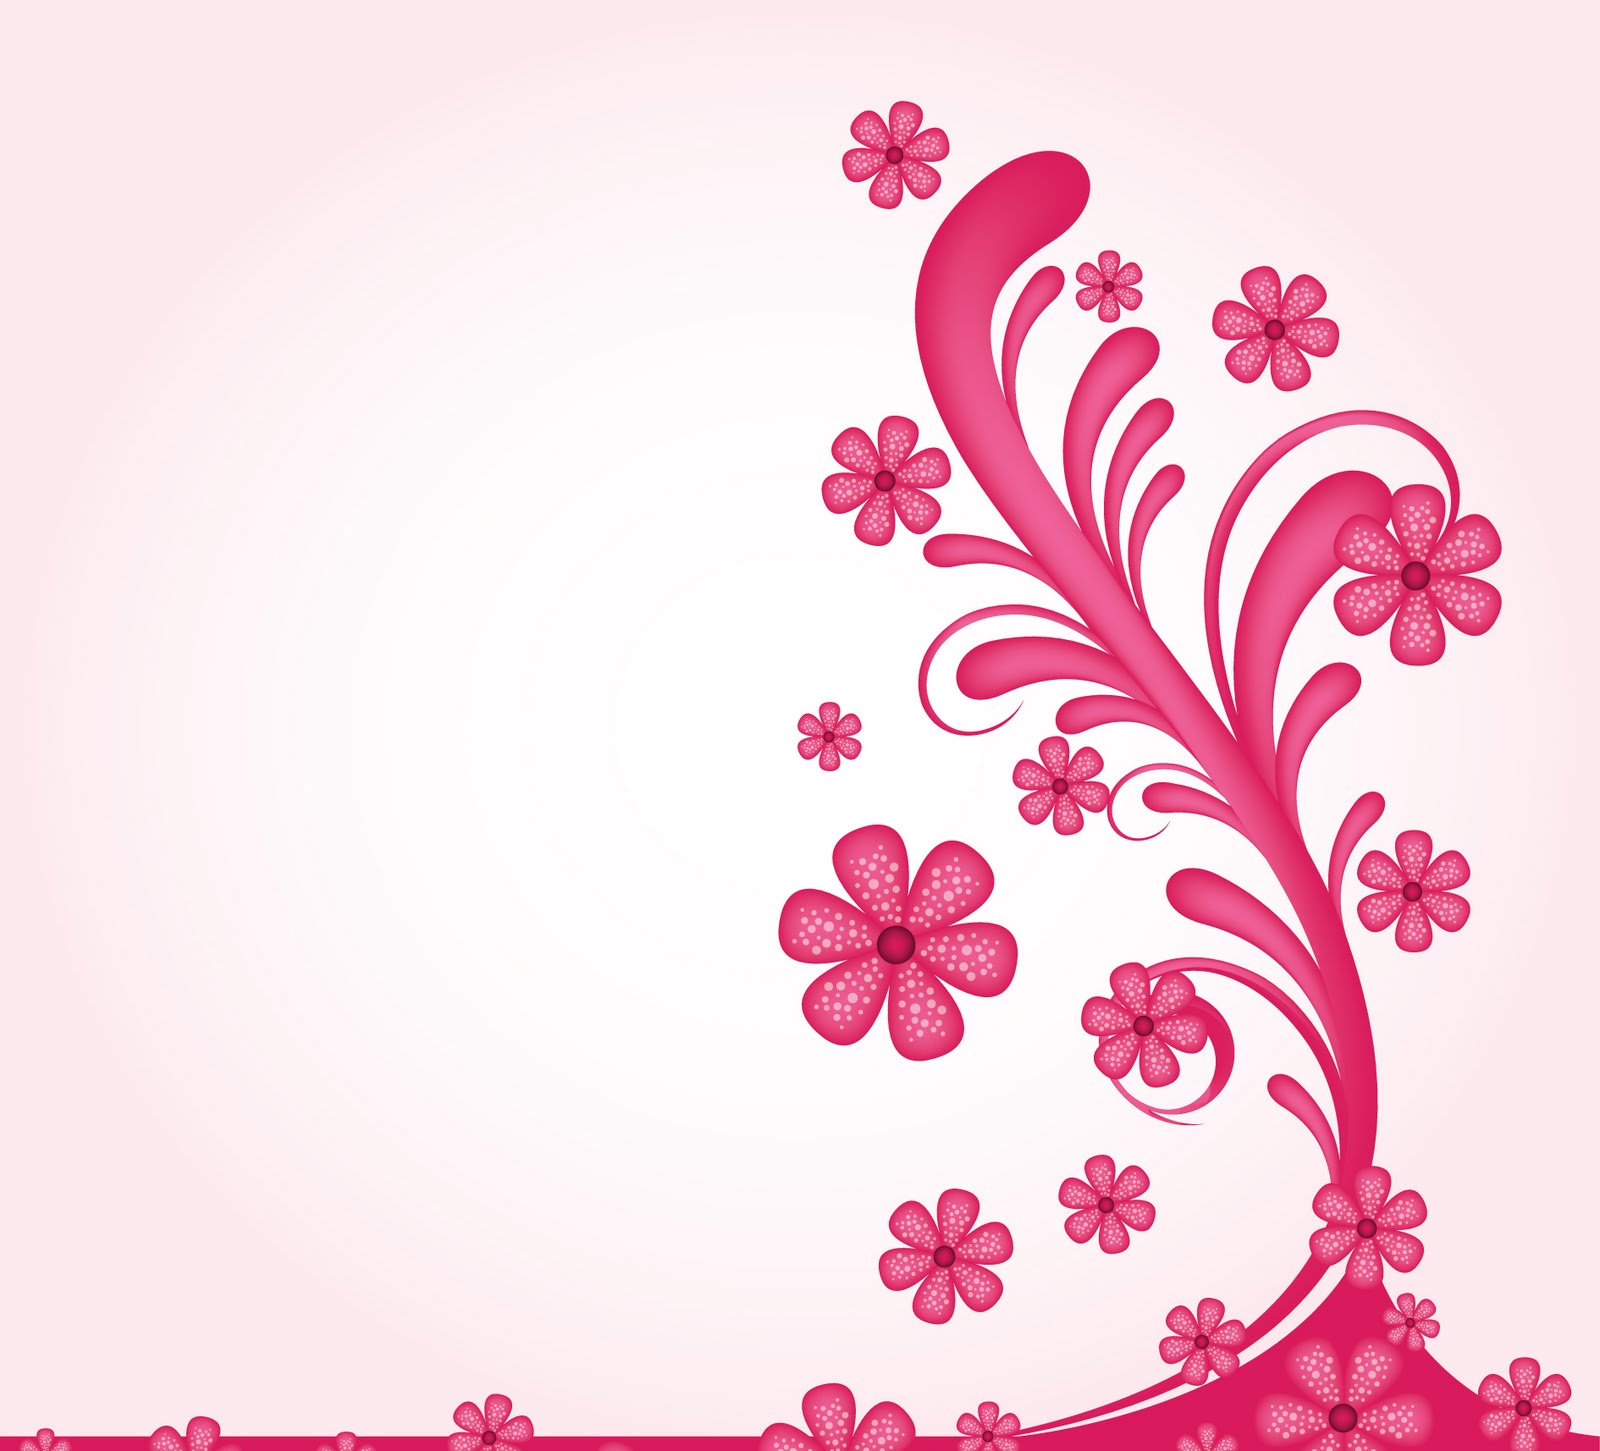 Decoration clipart powerpoint Power Floral & Pink 4